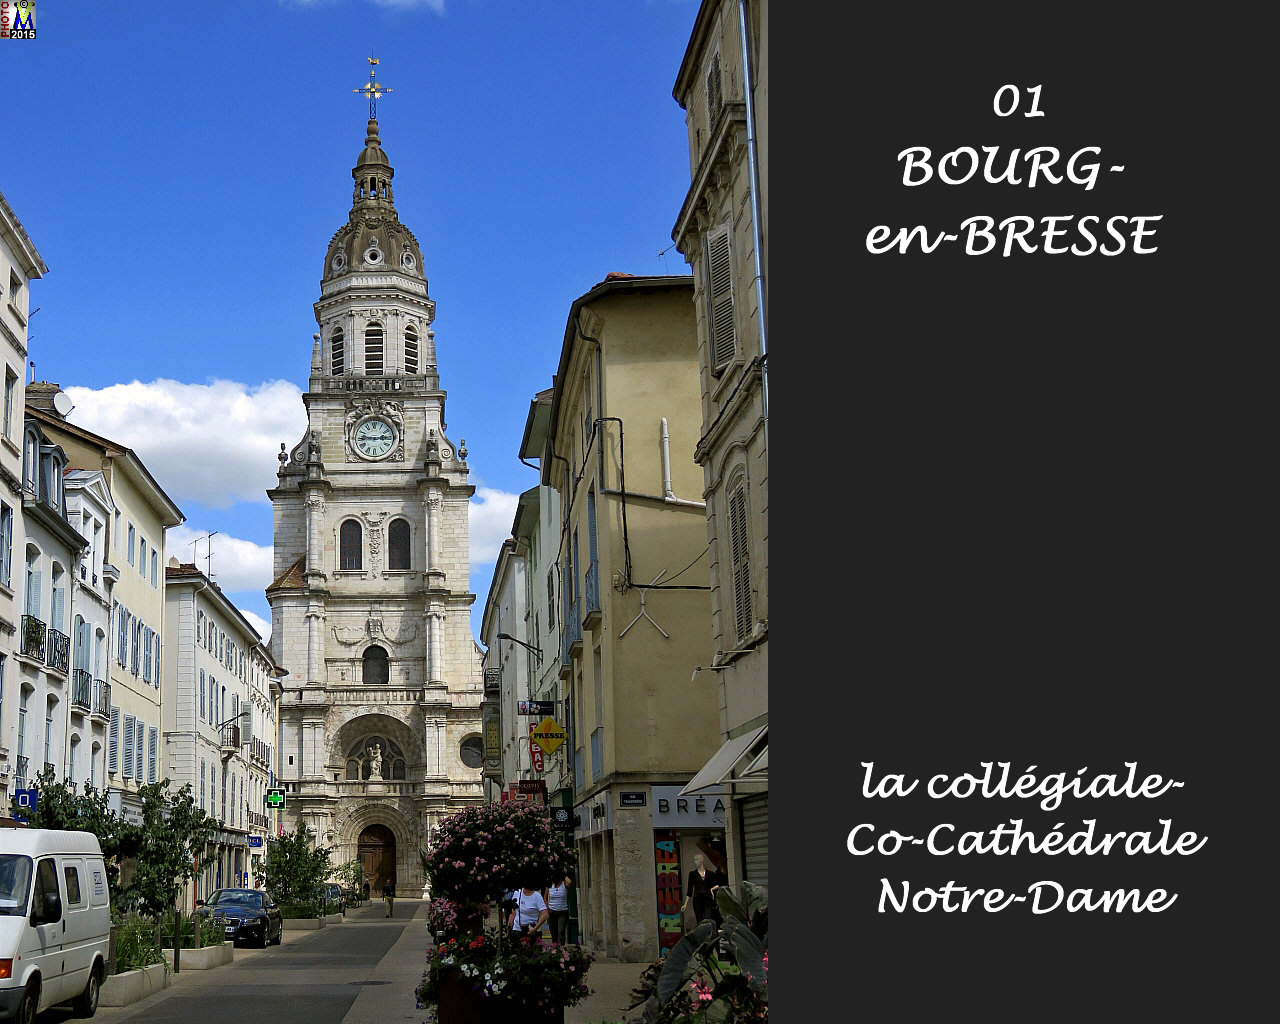 01BOURG-BRESSE_cathedrale_100.jpg